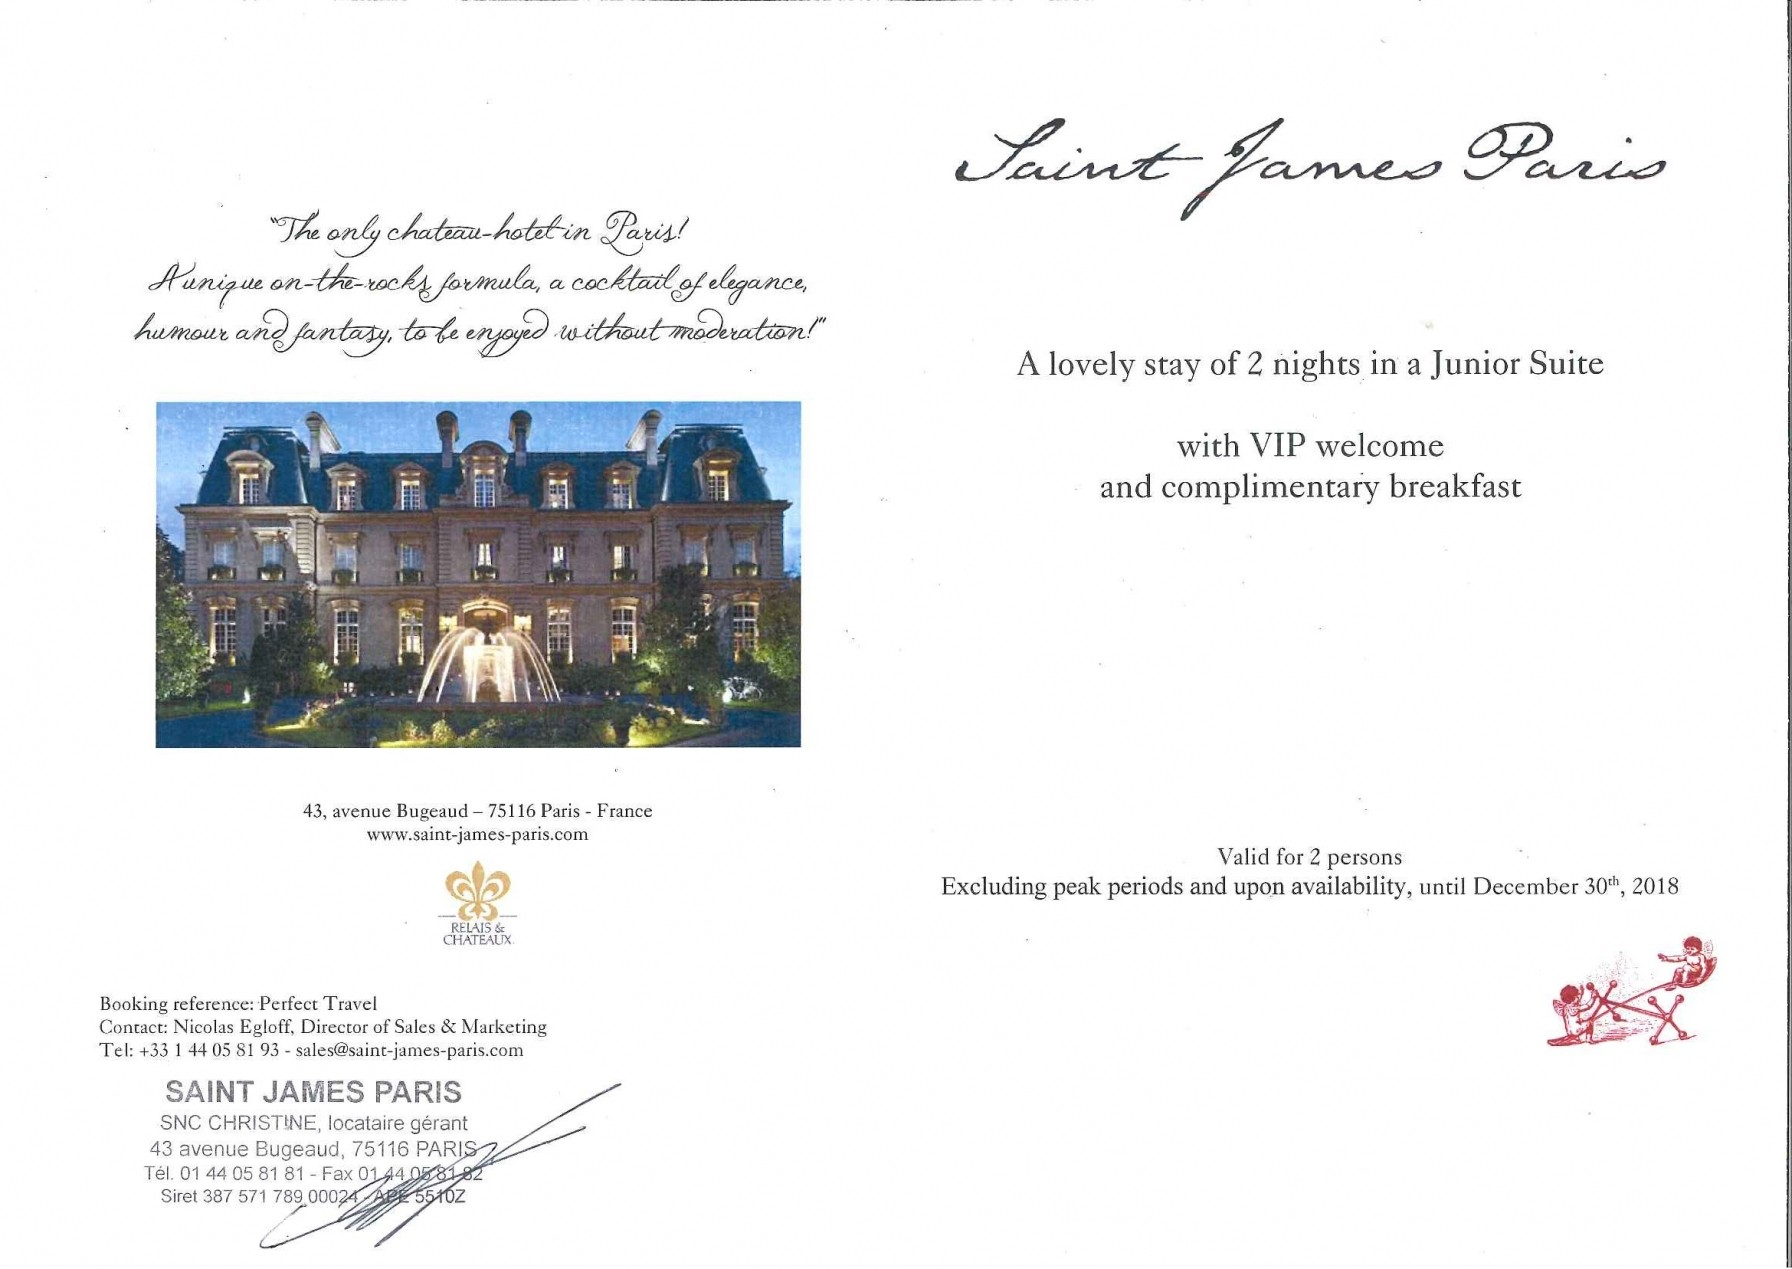 Perfect Travel - Saint James Paris voucher.jpg